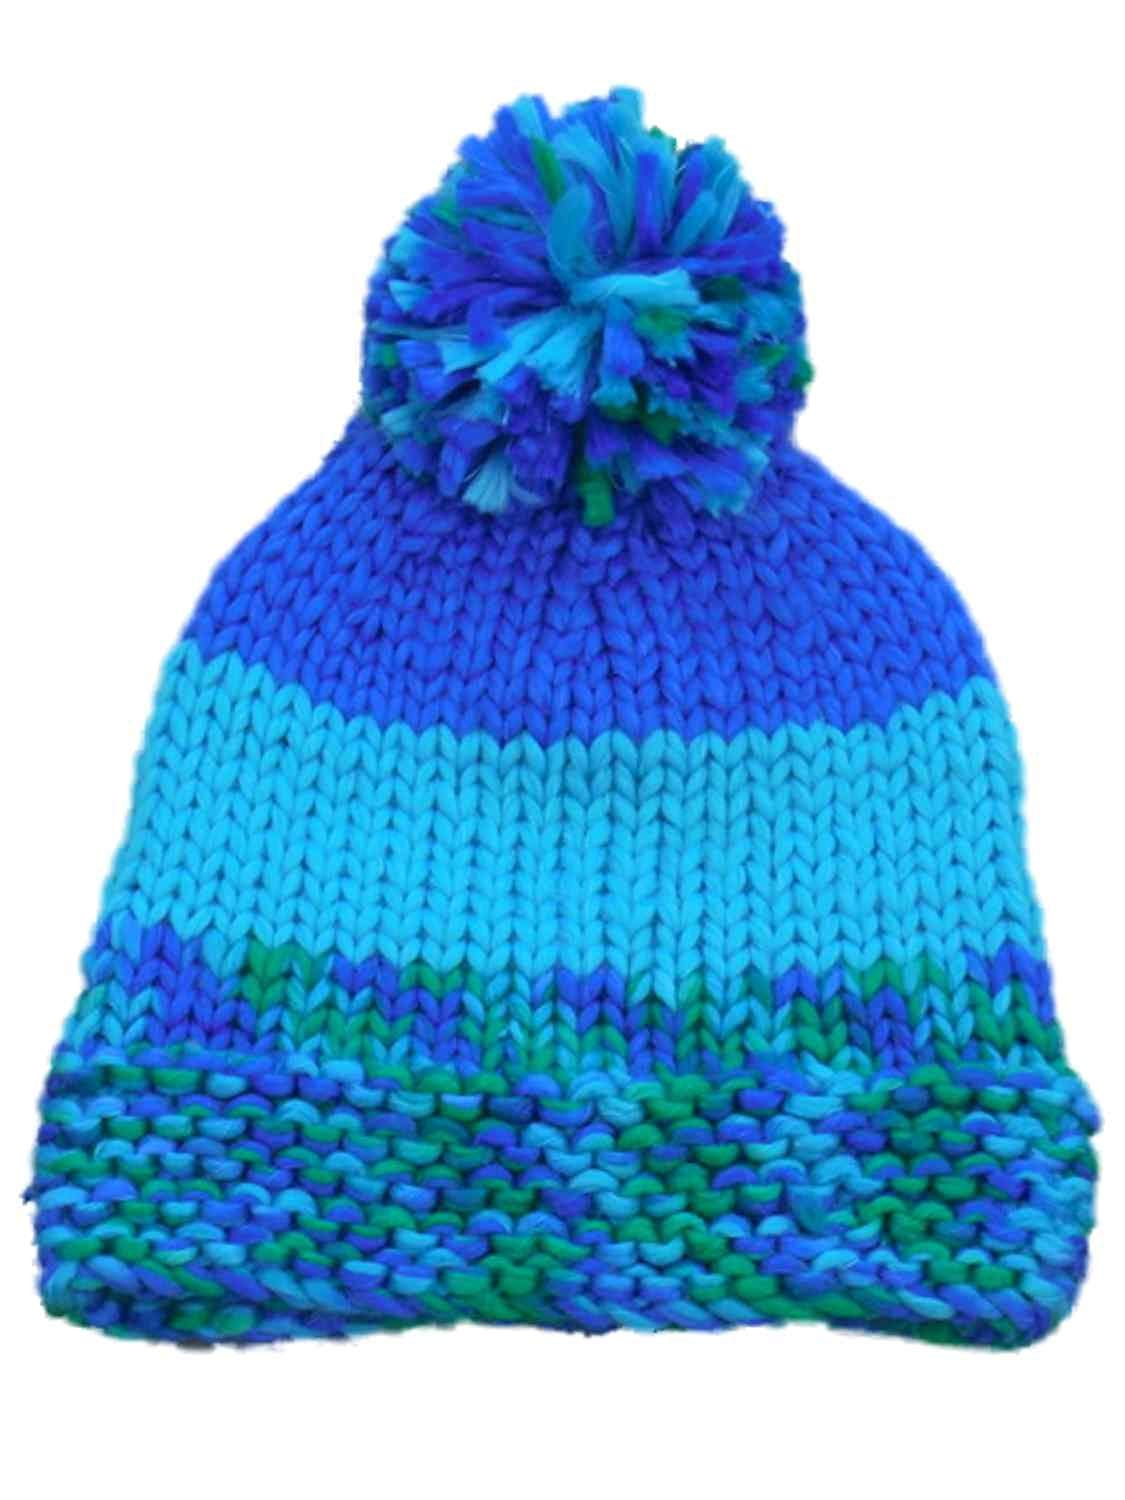 587a7a09d2961 Get Quotations · Urbanology Womens Blue And Green Knit Beanie Stocking Cap  Hat